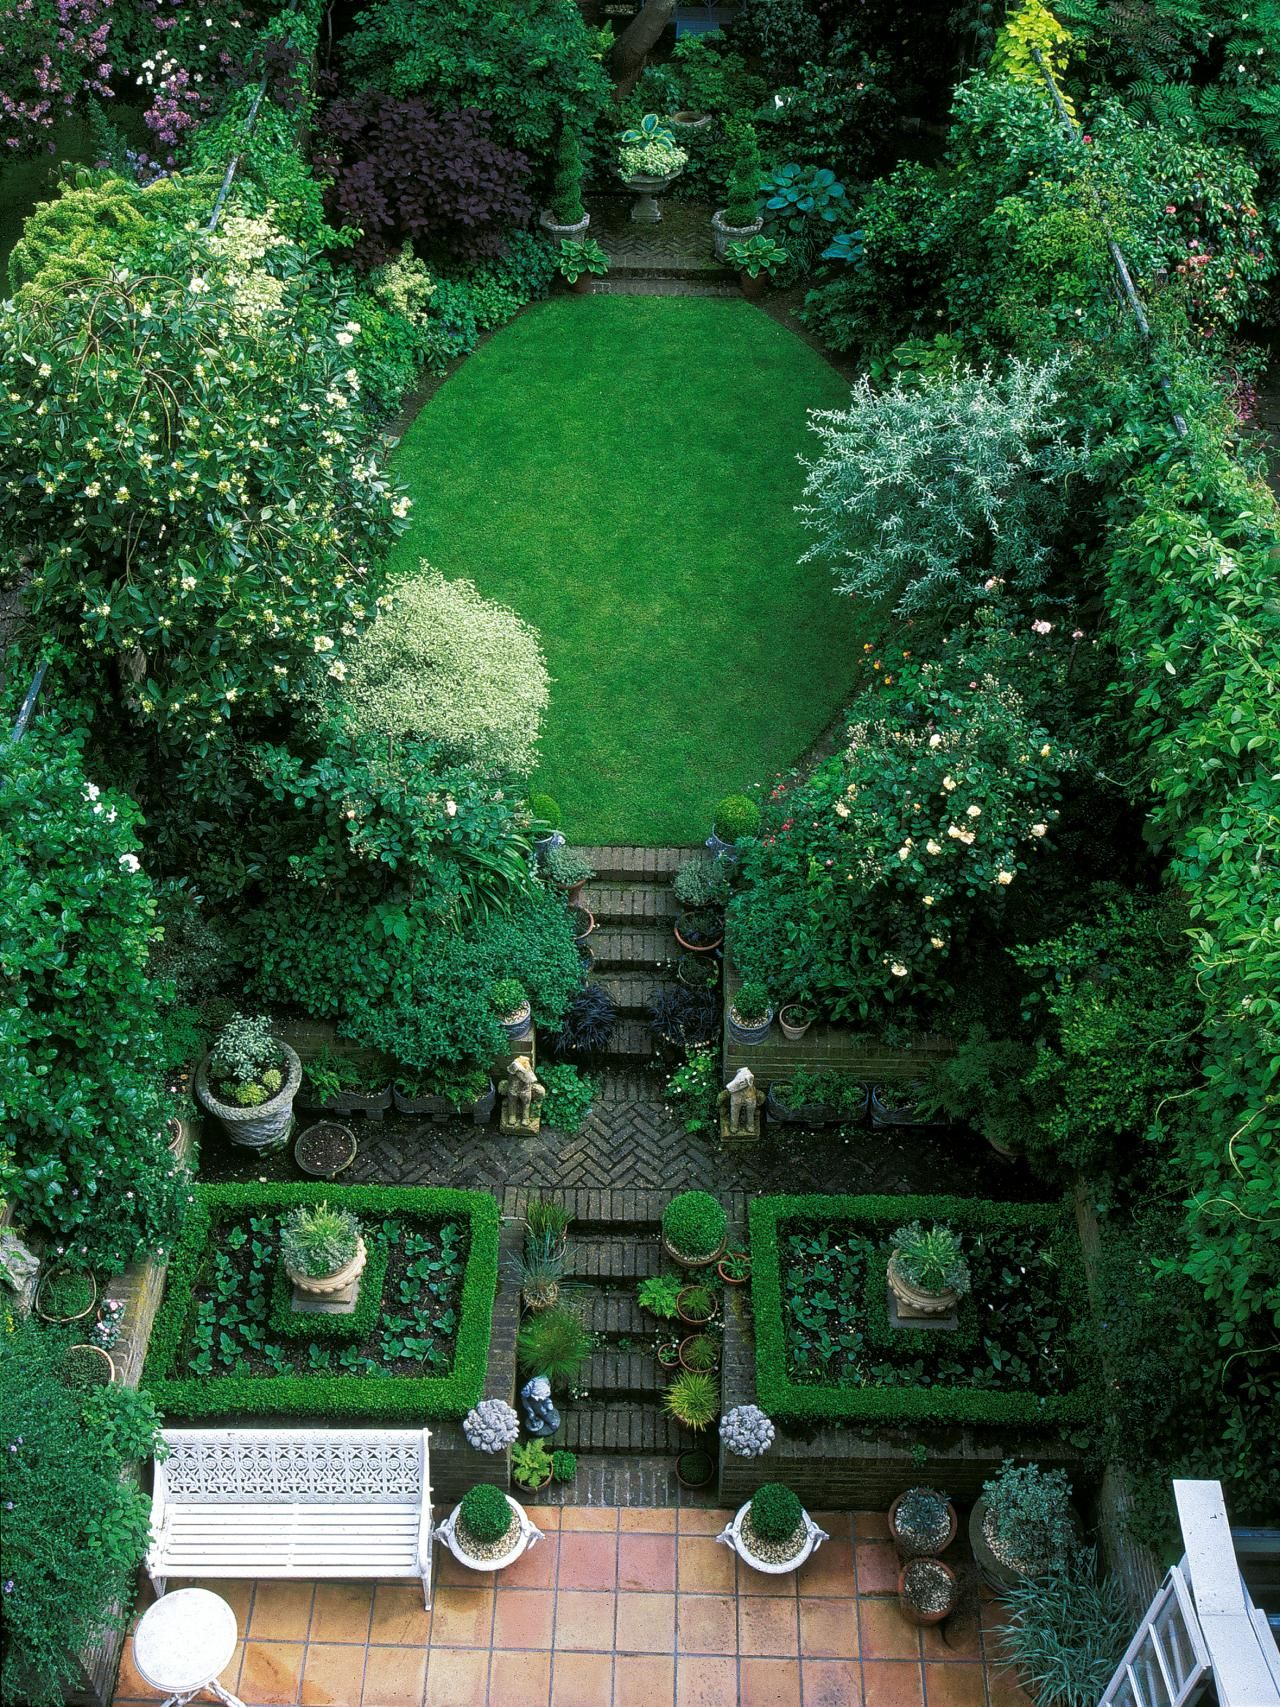 this oval lawn is set among luxurious greenery and multiple terraces